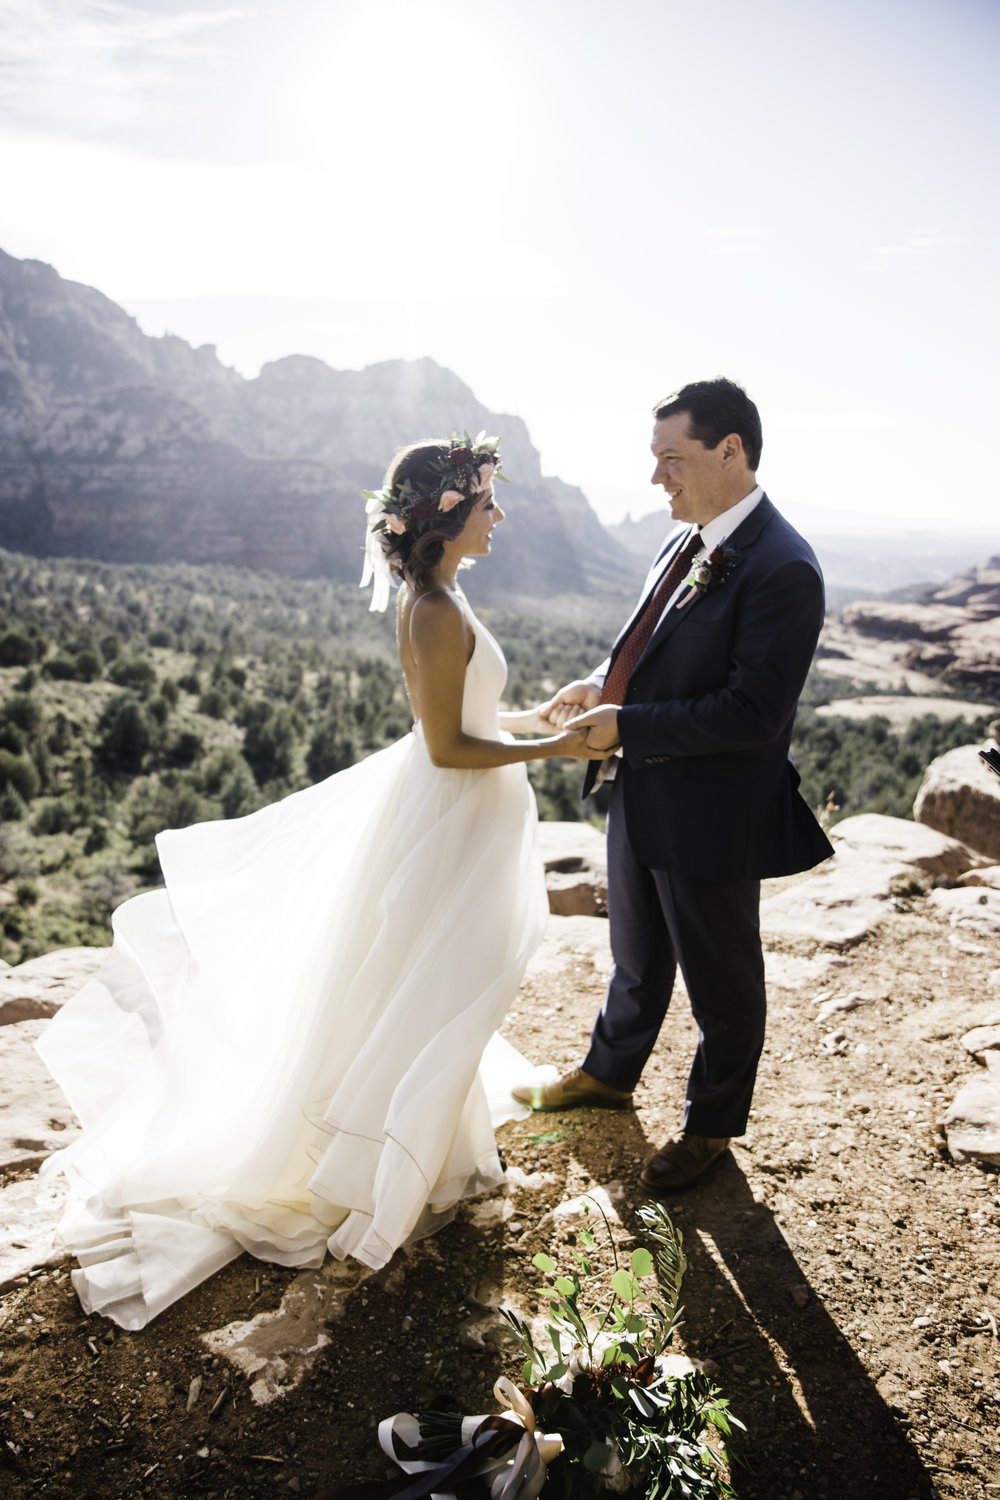 Cool news... - Christine & Paul's elopement at Merry-Go-Round-Rock in Sedona, AZ that allen and I captured, caught the attention of Lovely Bride - one of the top wedding gown boutiques in the country. We're so honored they wanted to publish and feature this intimate, adventurous elopement we captured and help coordinate. But how could they not? Their bride in one of the most breathtaking locations in the Southwest. More coming soon to our blog - but in the meantime, check out more on this adventurous love story below!